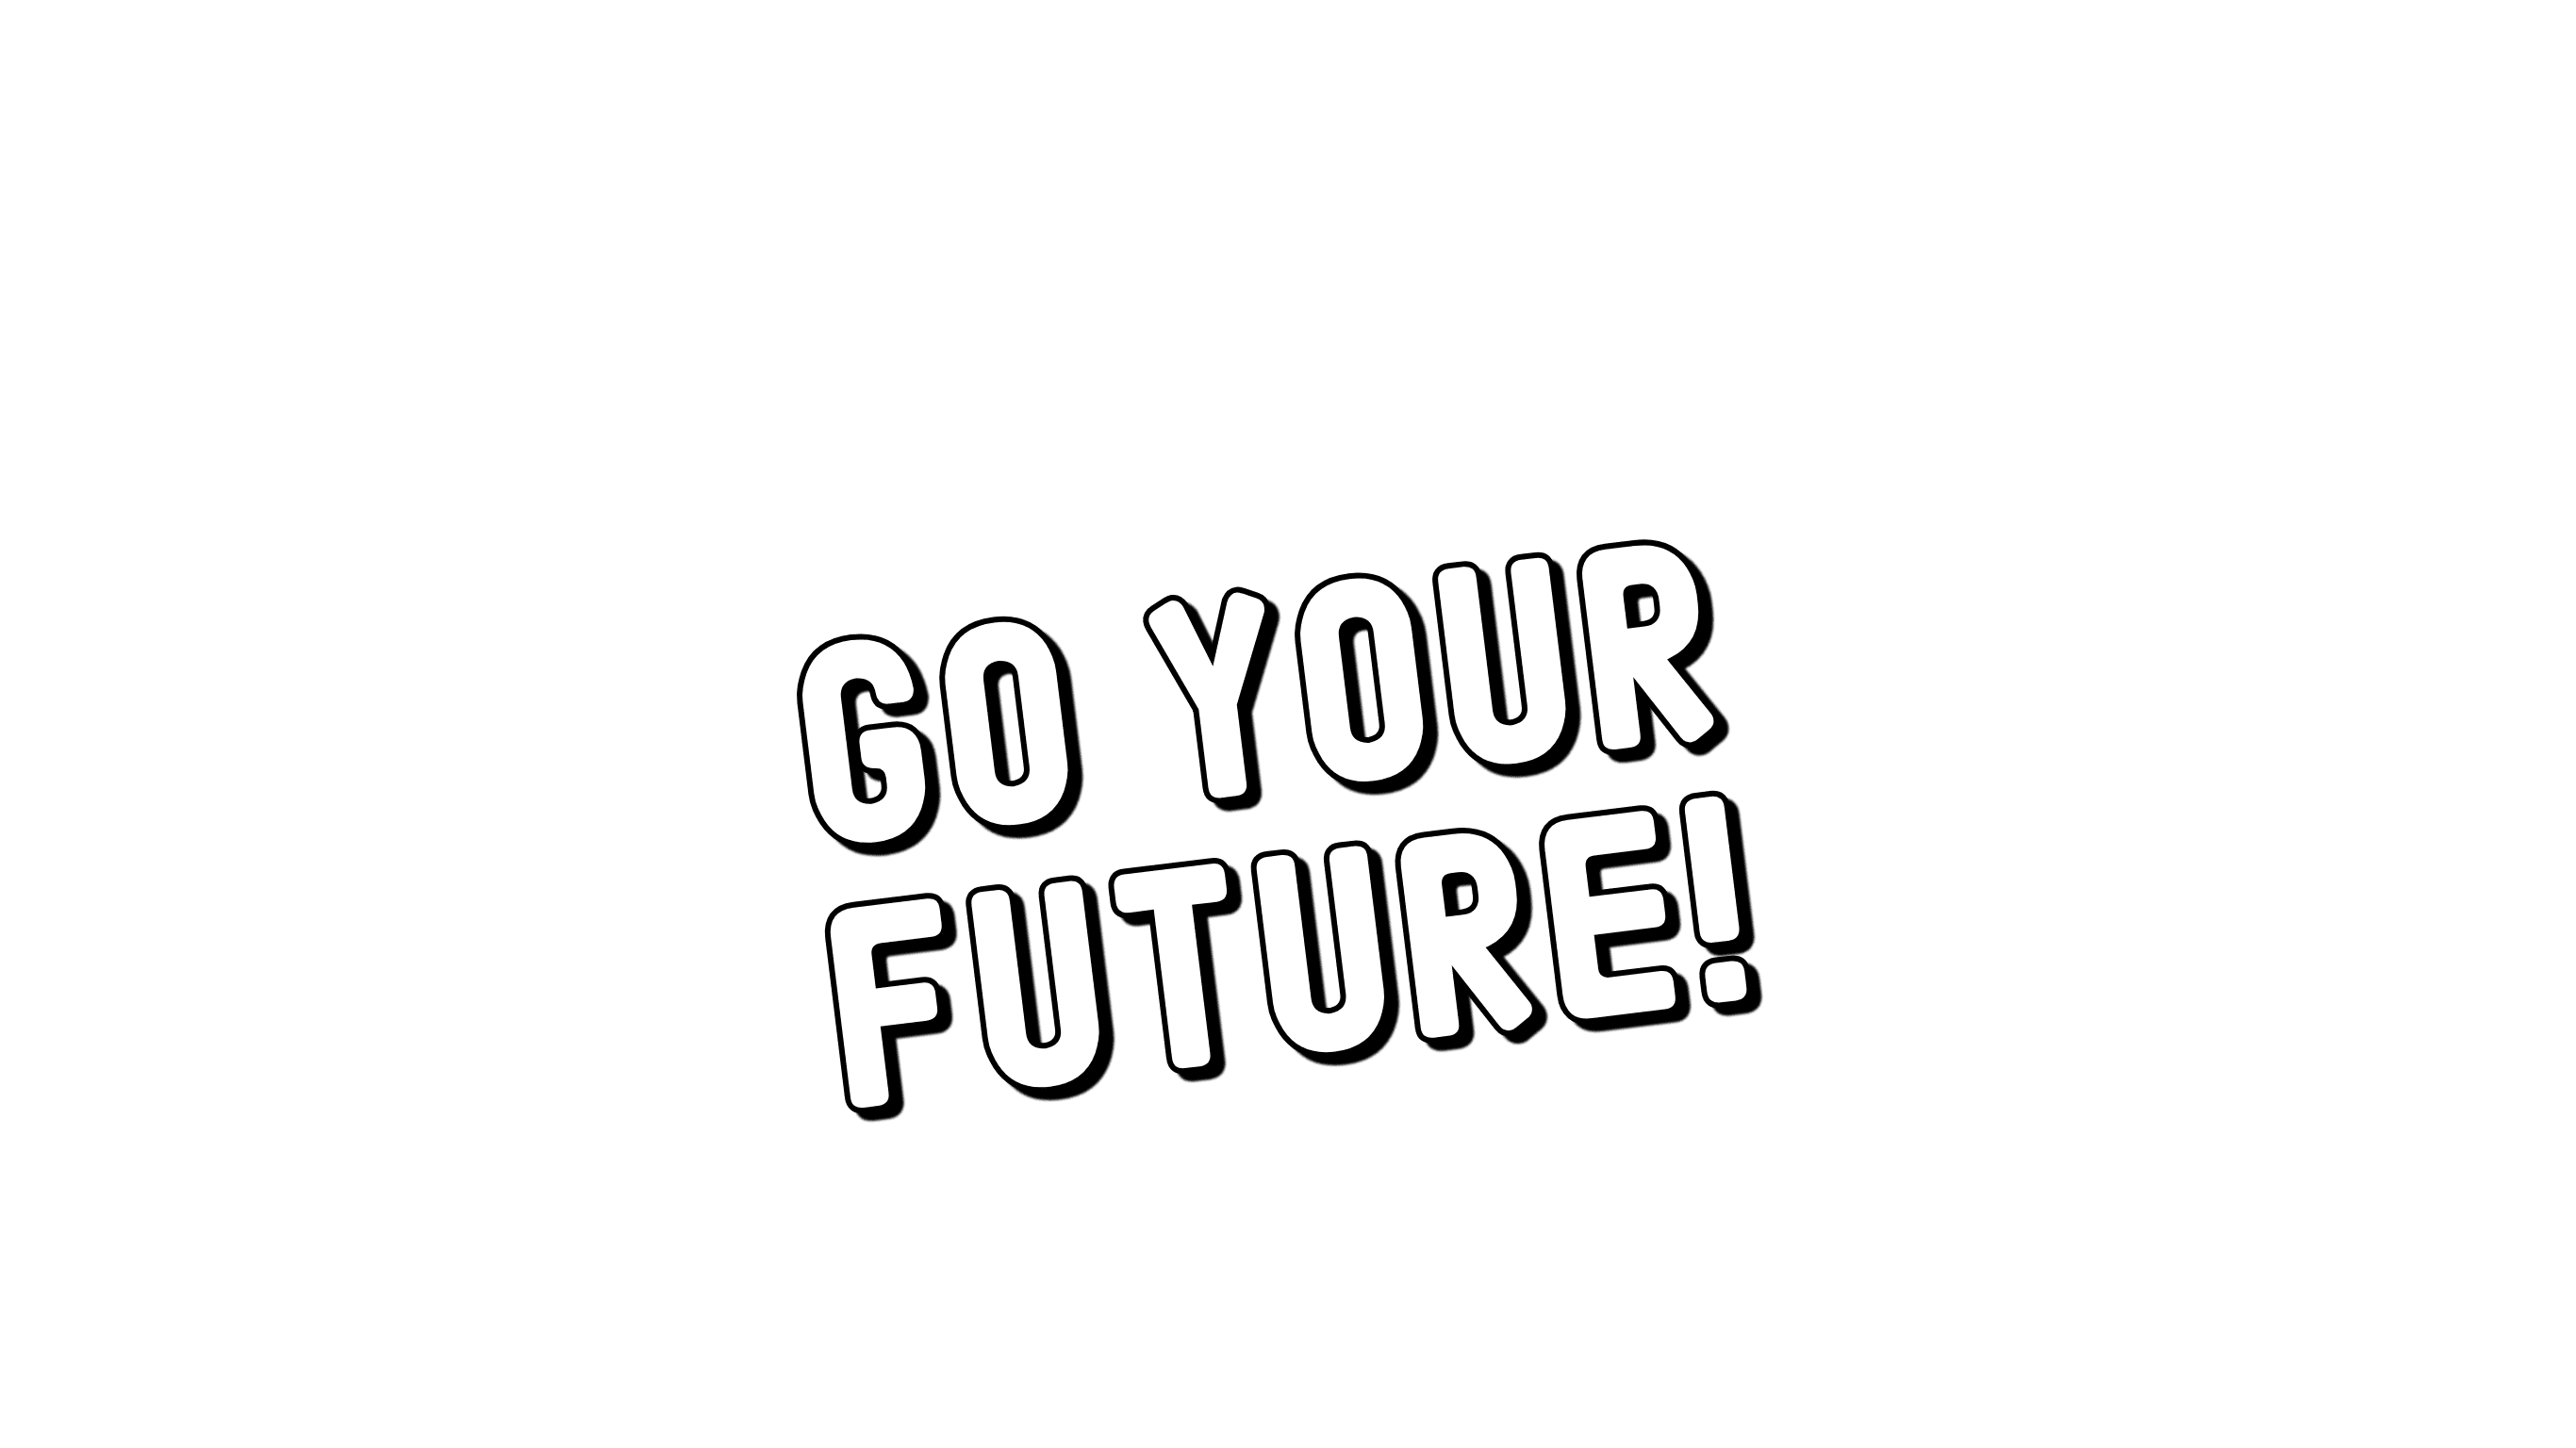 GO YOUR FUTURE!